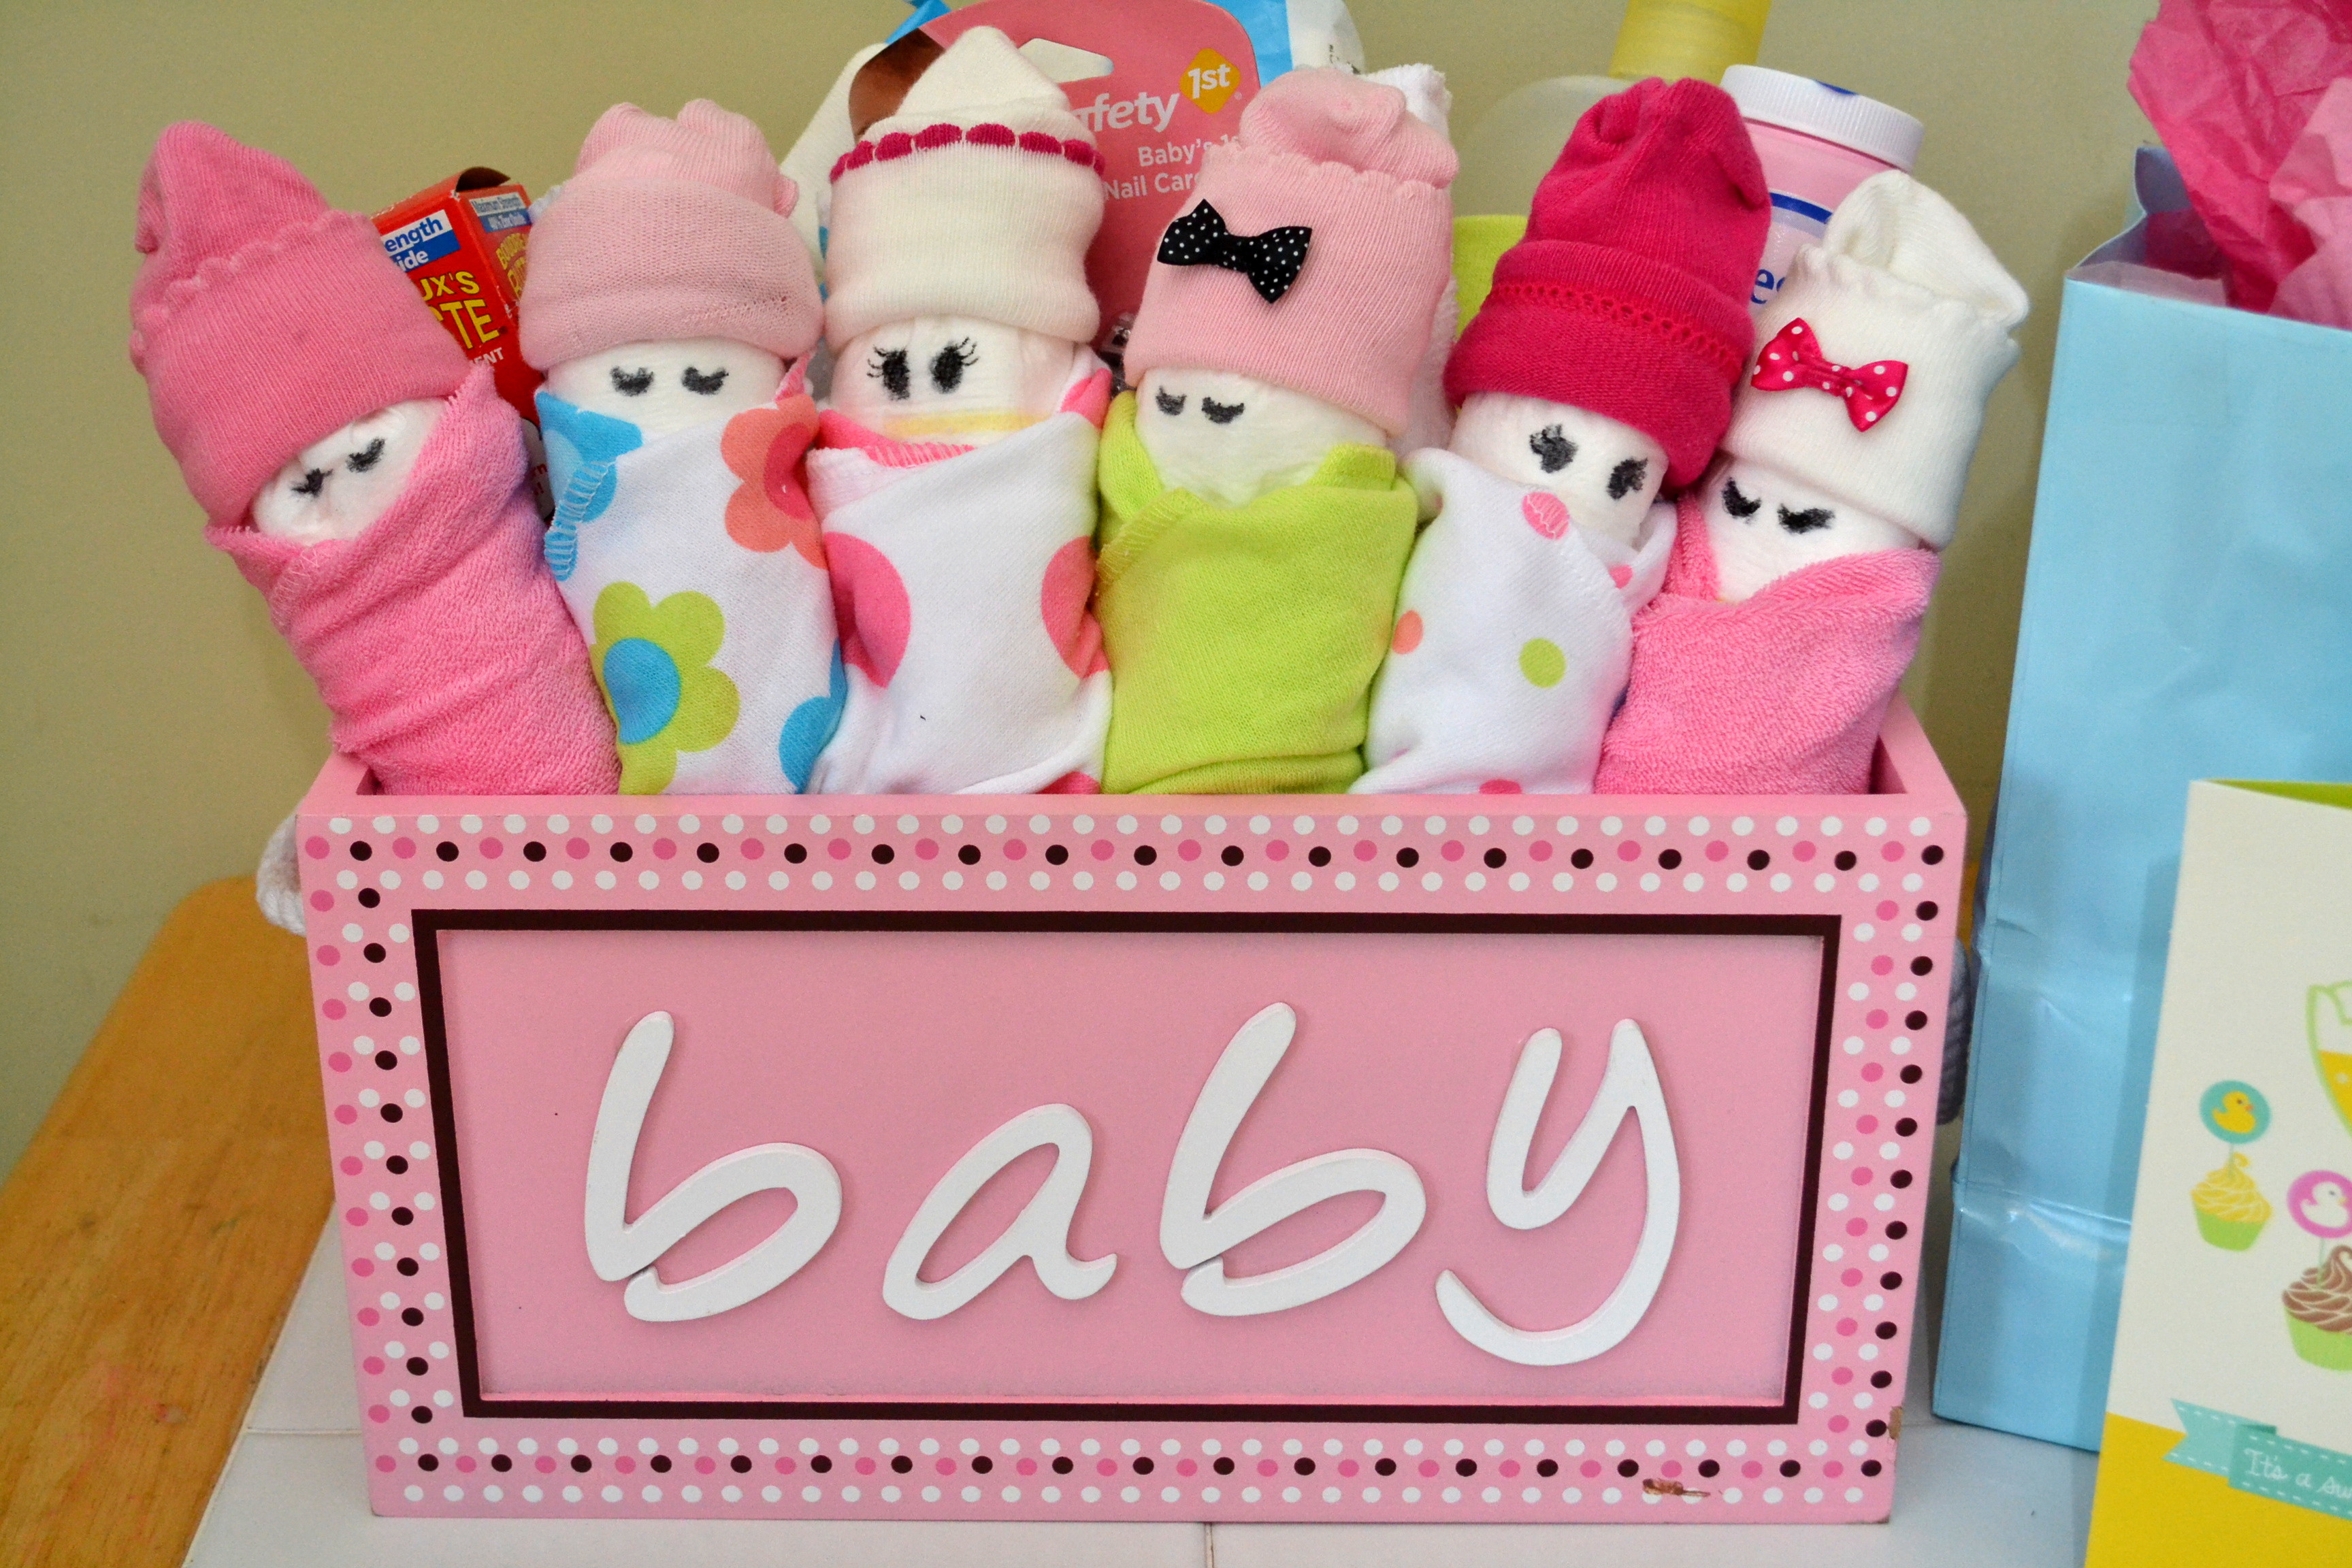 Best ideas about Baby Shower DIY Gifts . Save or Pin Essential Baby Shower Gifts & DIY Diaper Babies Now.